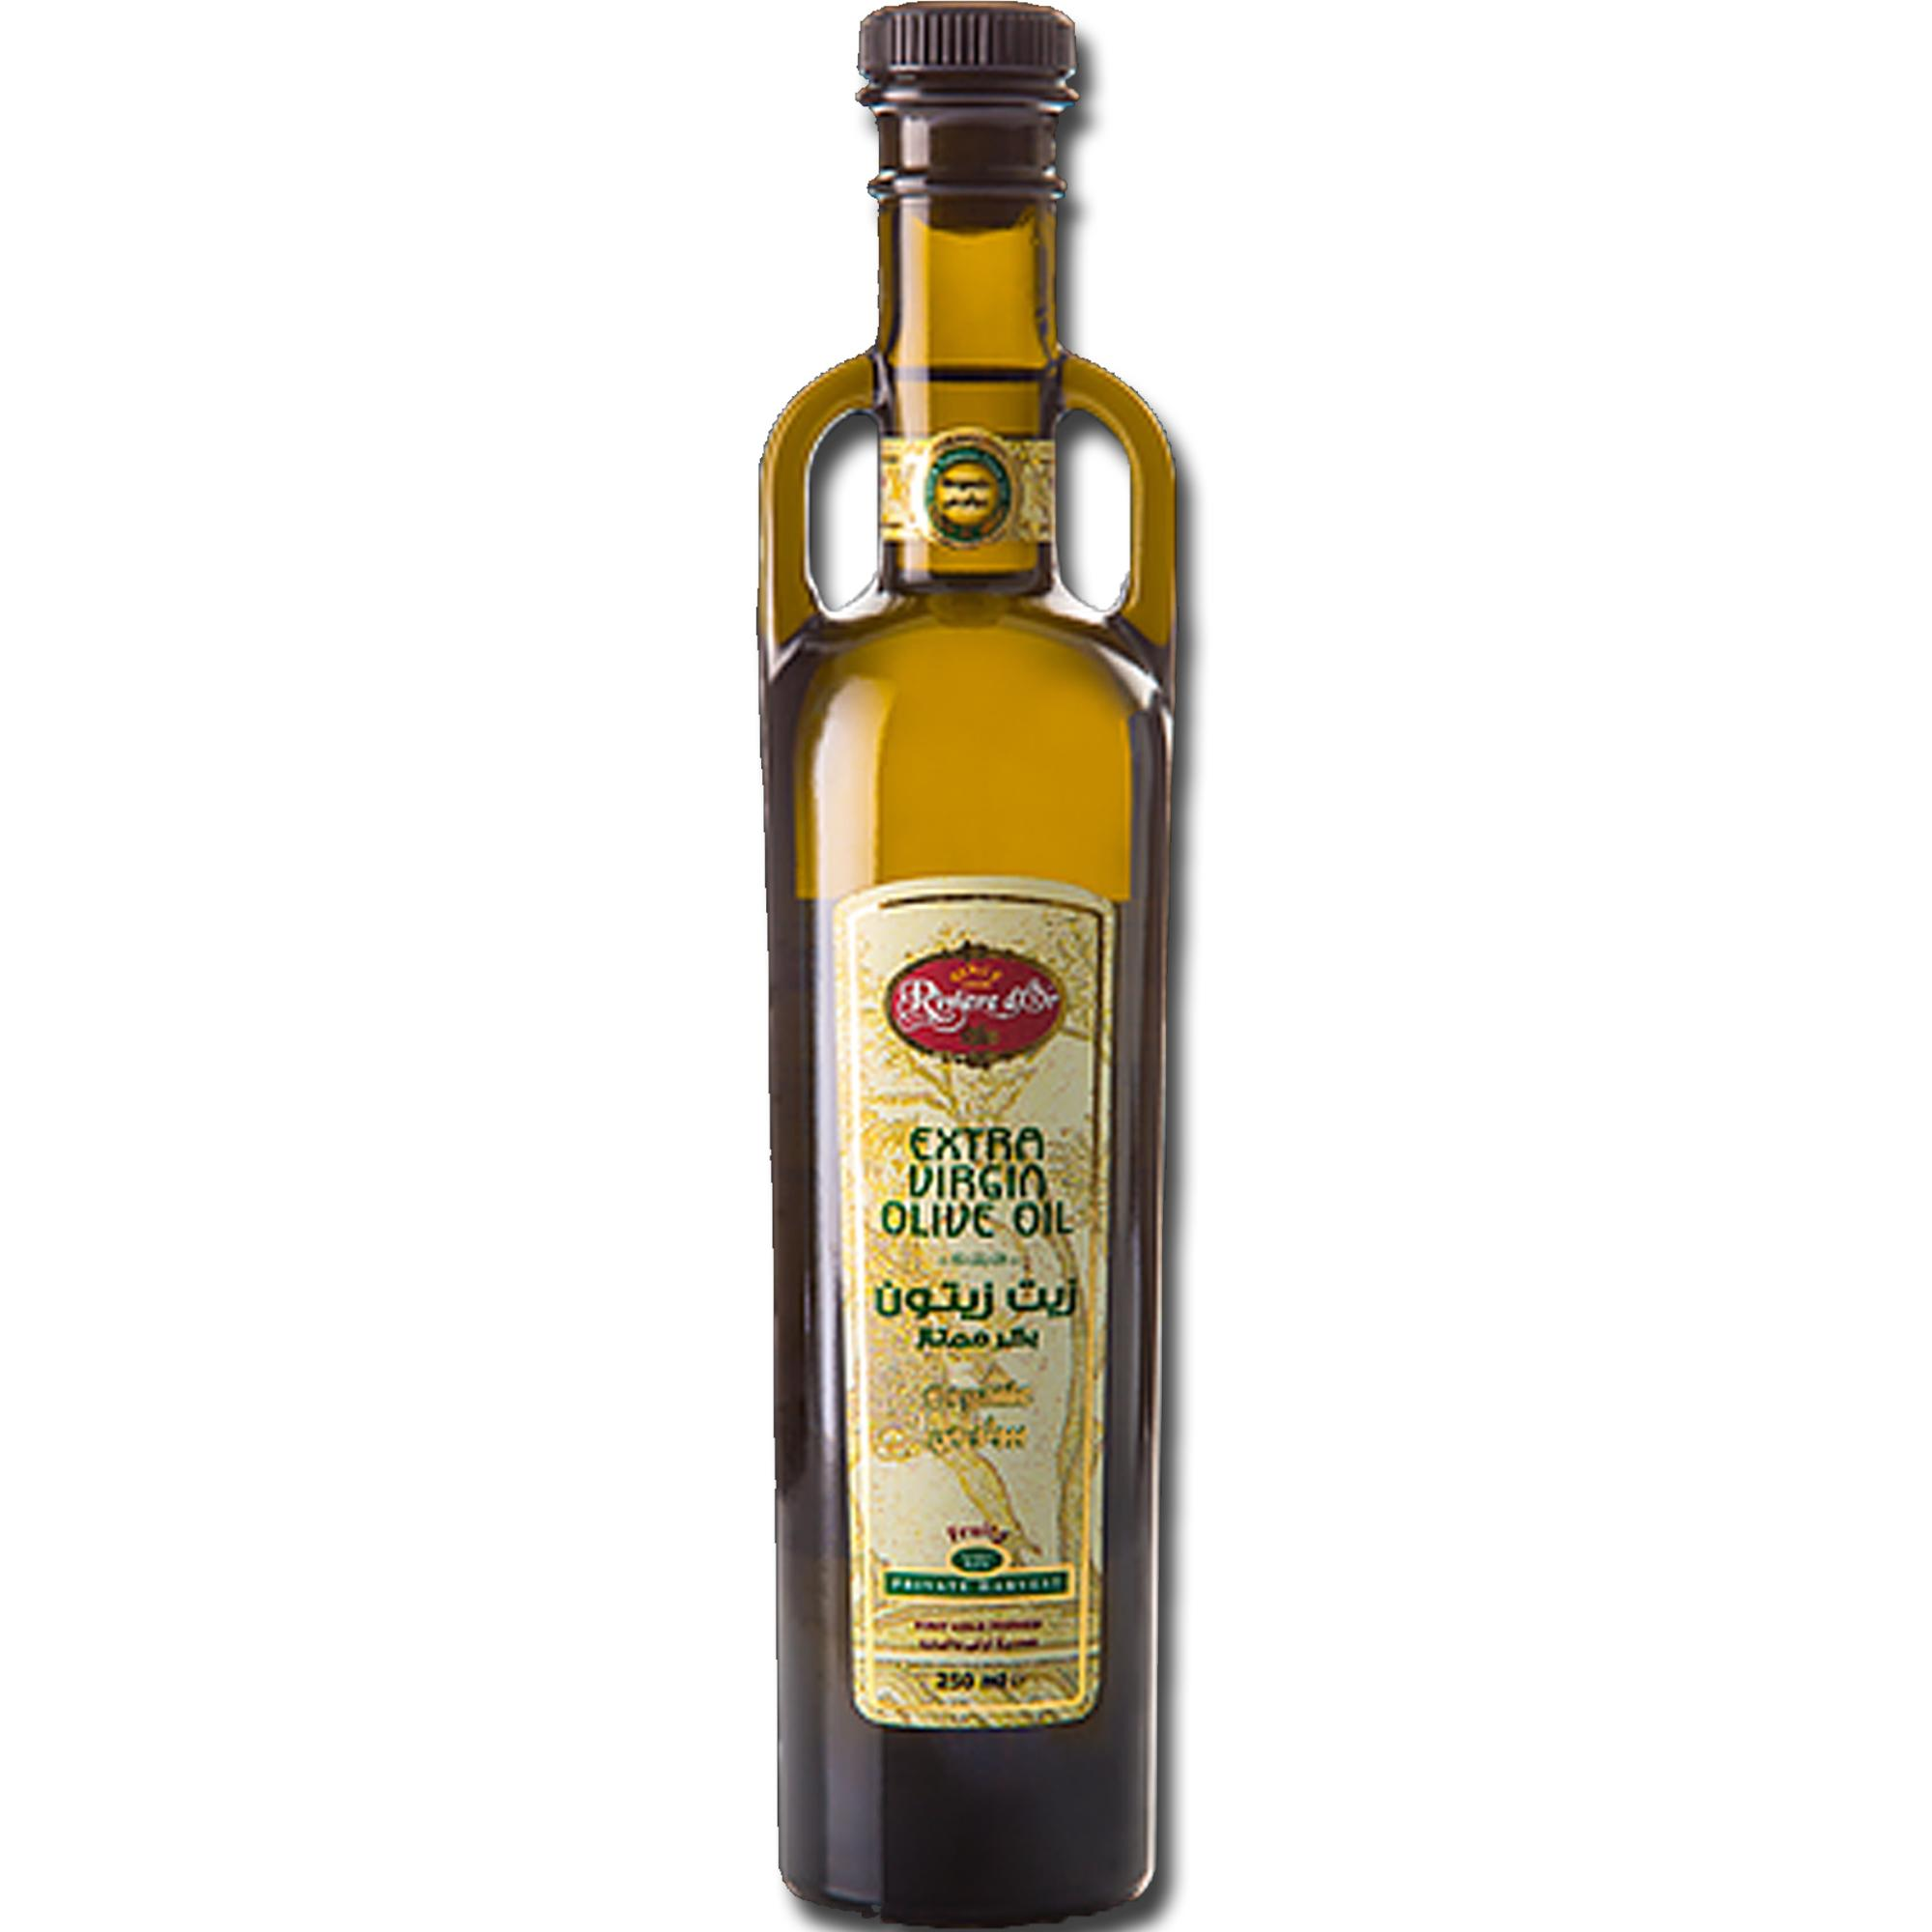 ORGANIC OLIVE OIL 250ML IN SPECIAL GIFT BOTTLE